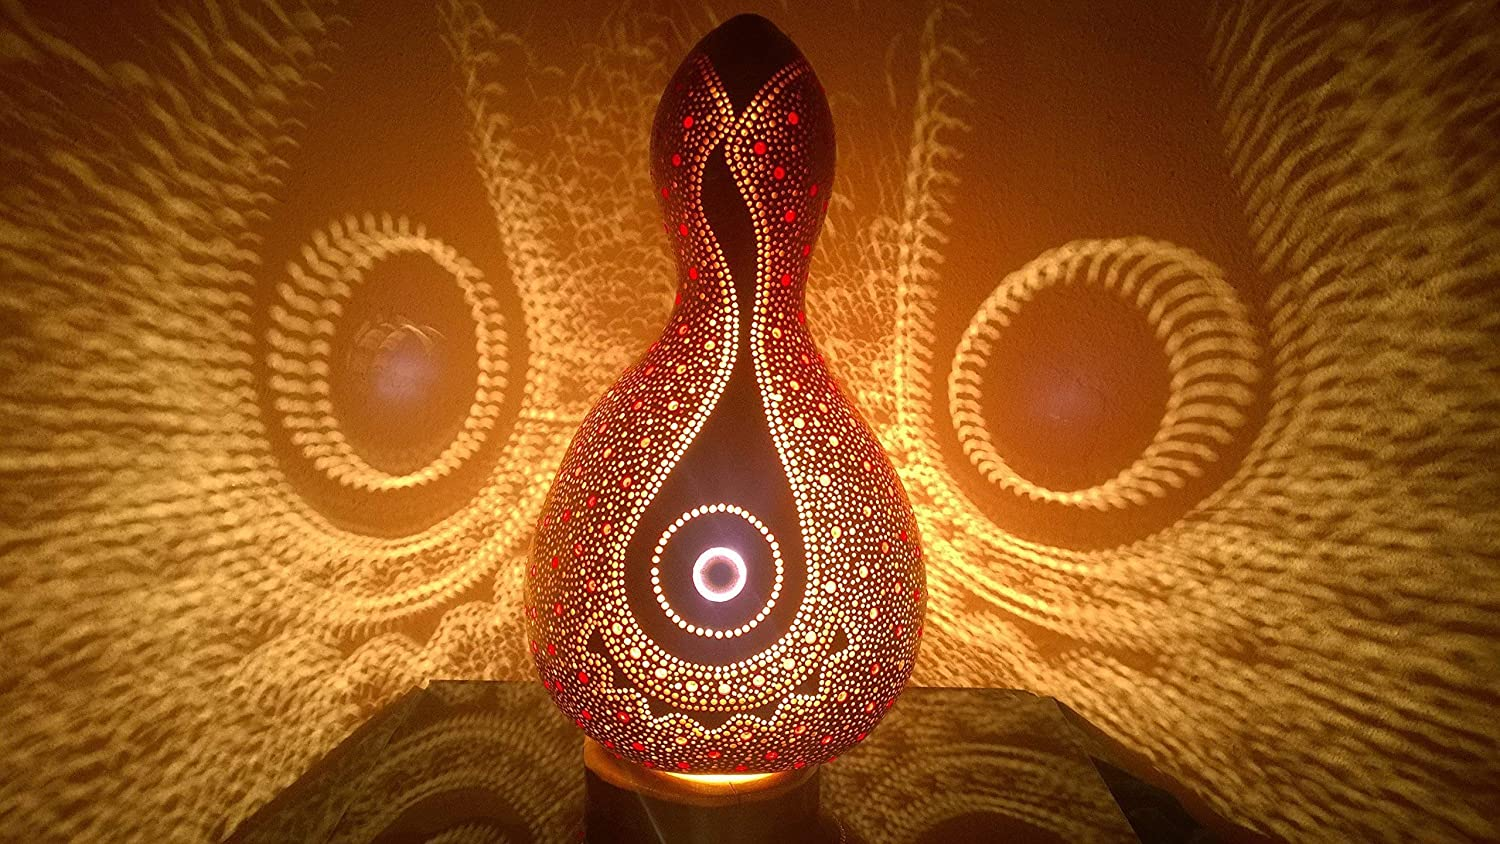 The Felicity Red Beadwork Gourd Lamp Night Light Unique Birthday Anniversary Gift Idea Bedroom Living Room Home Decor